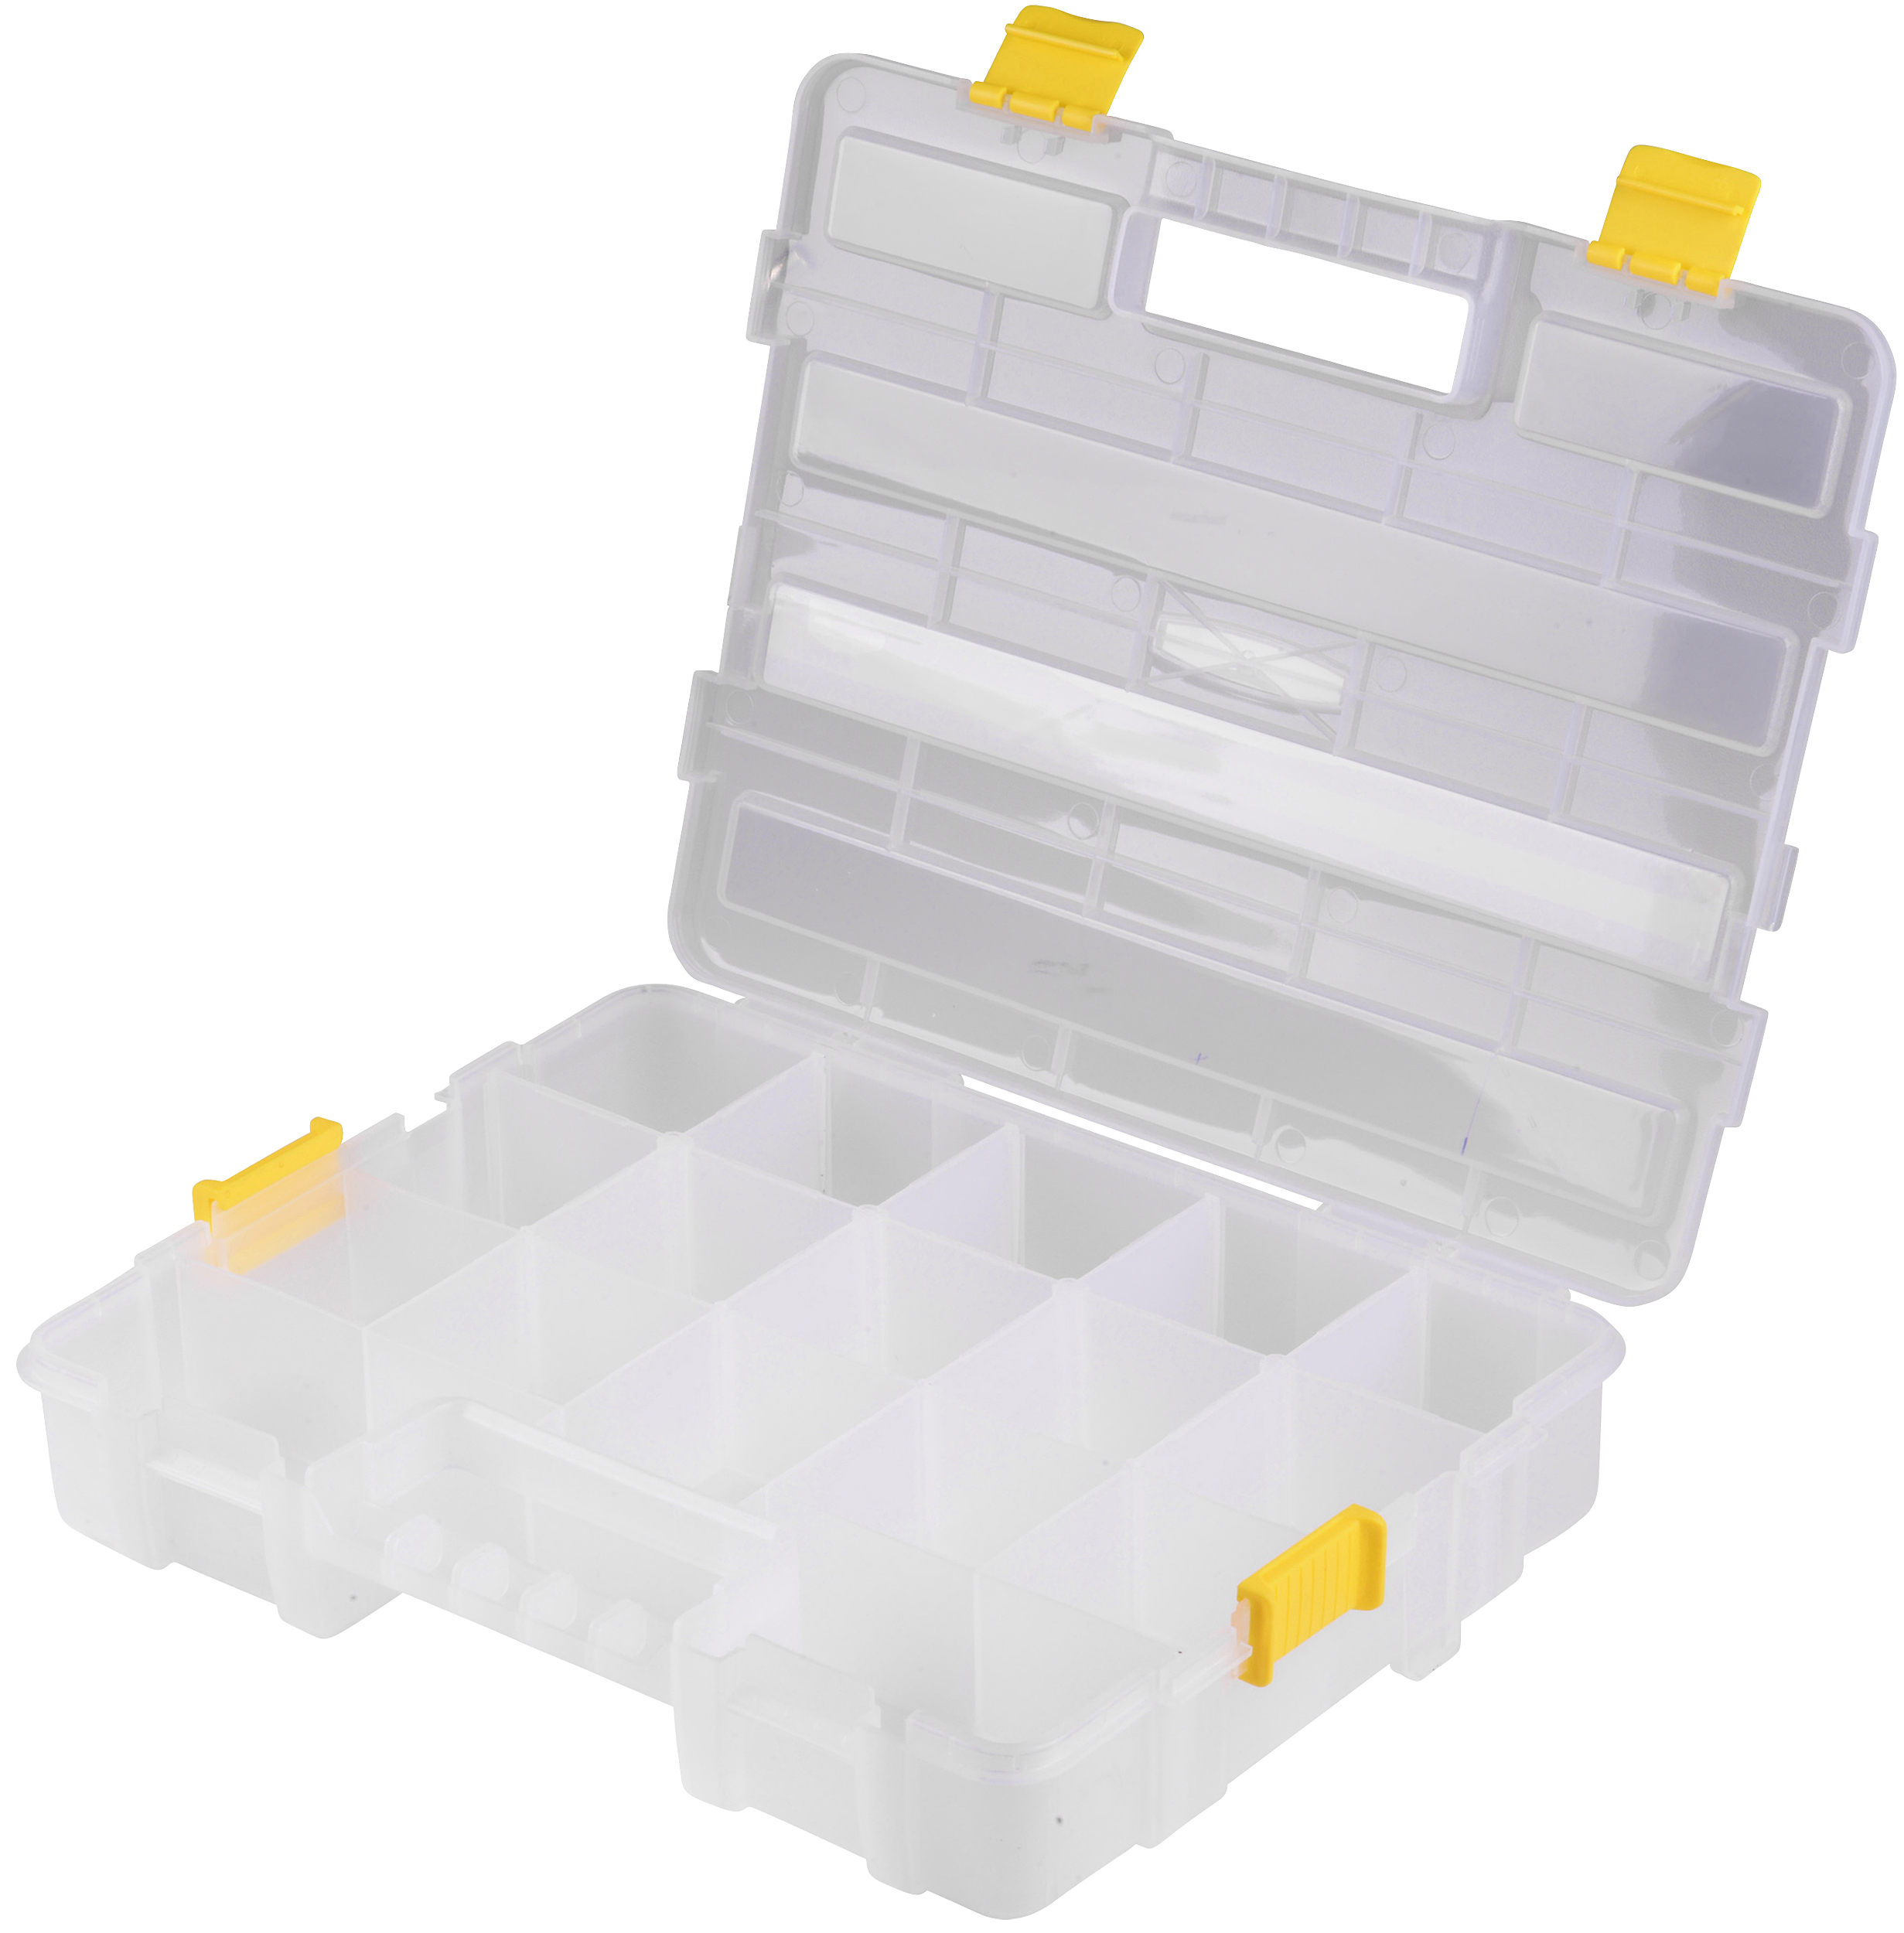 Spro-HD Tackle Box Double Sided 32x27x8cm-2 - Gerlinger.de